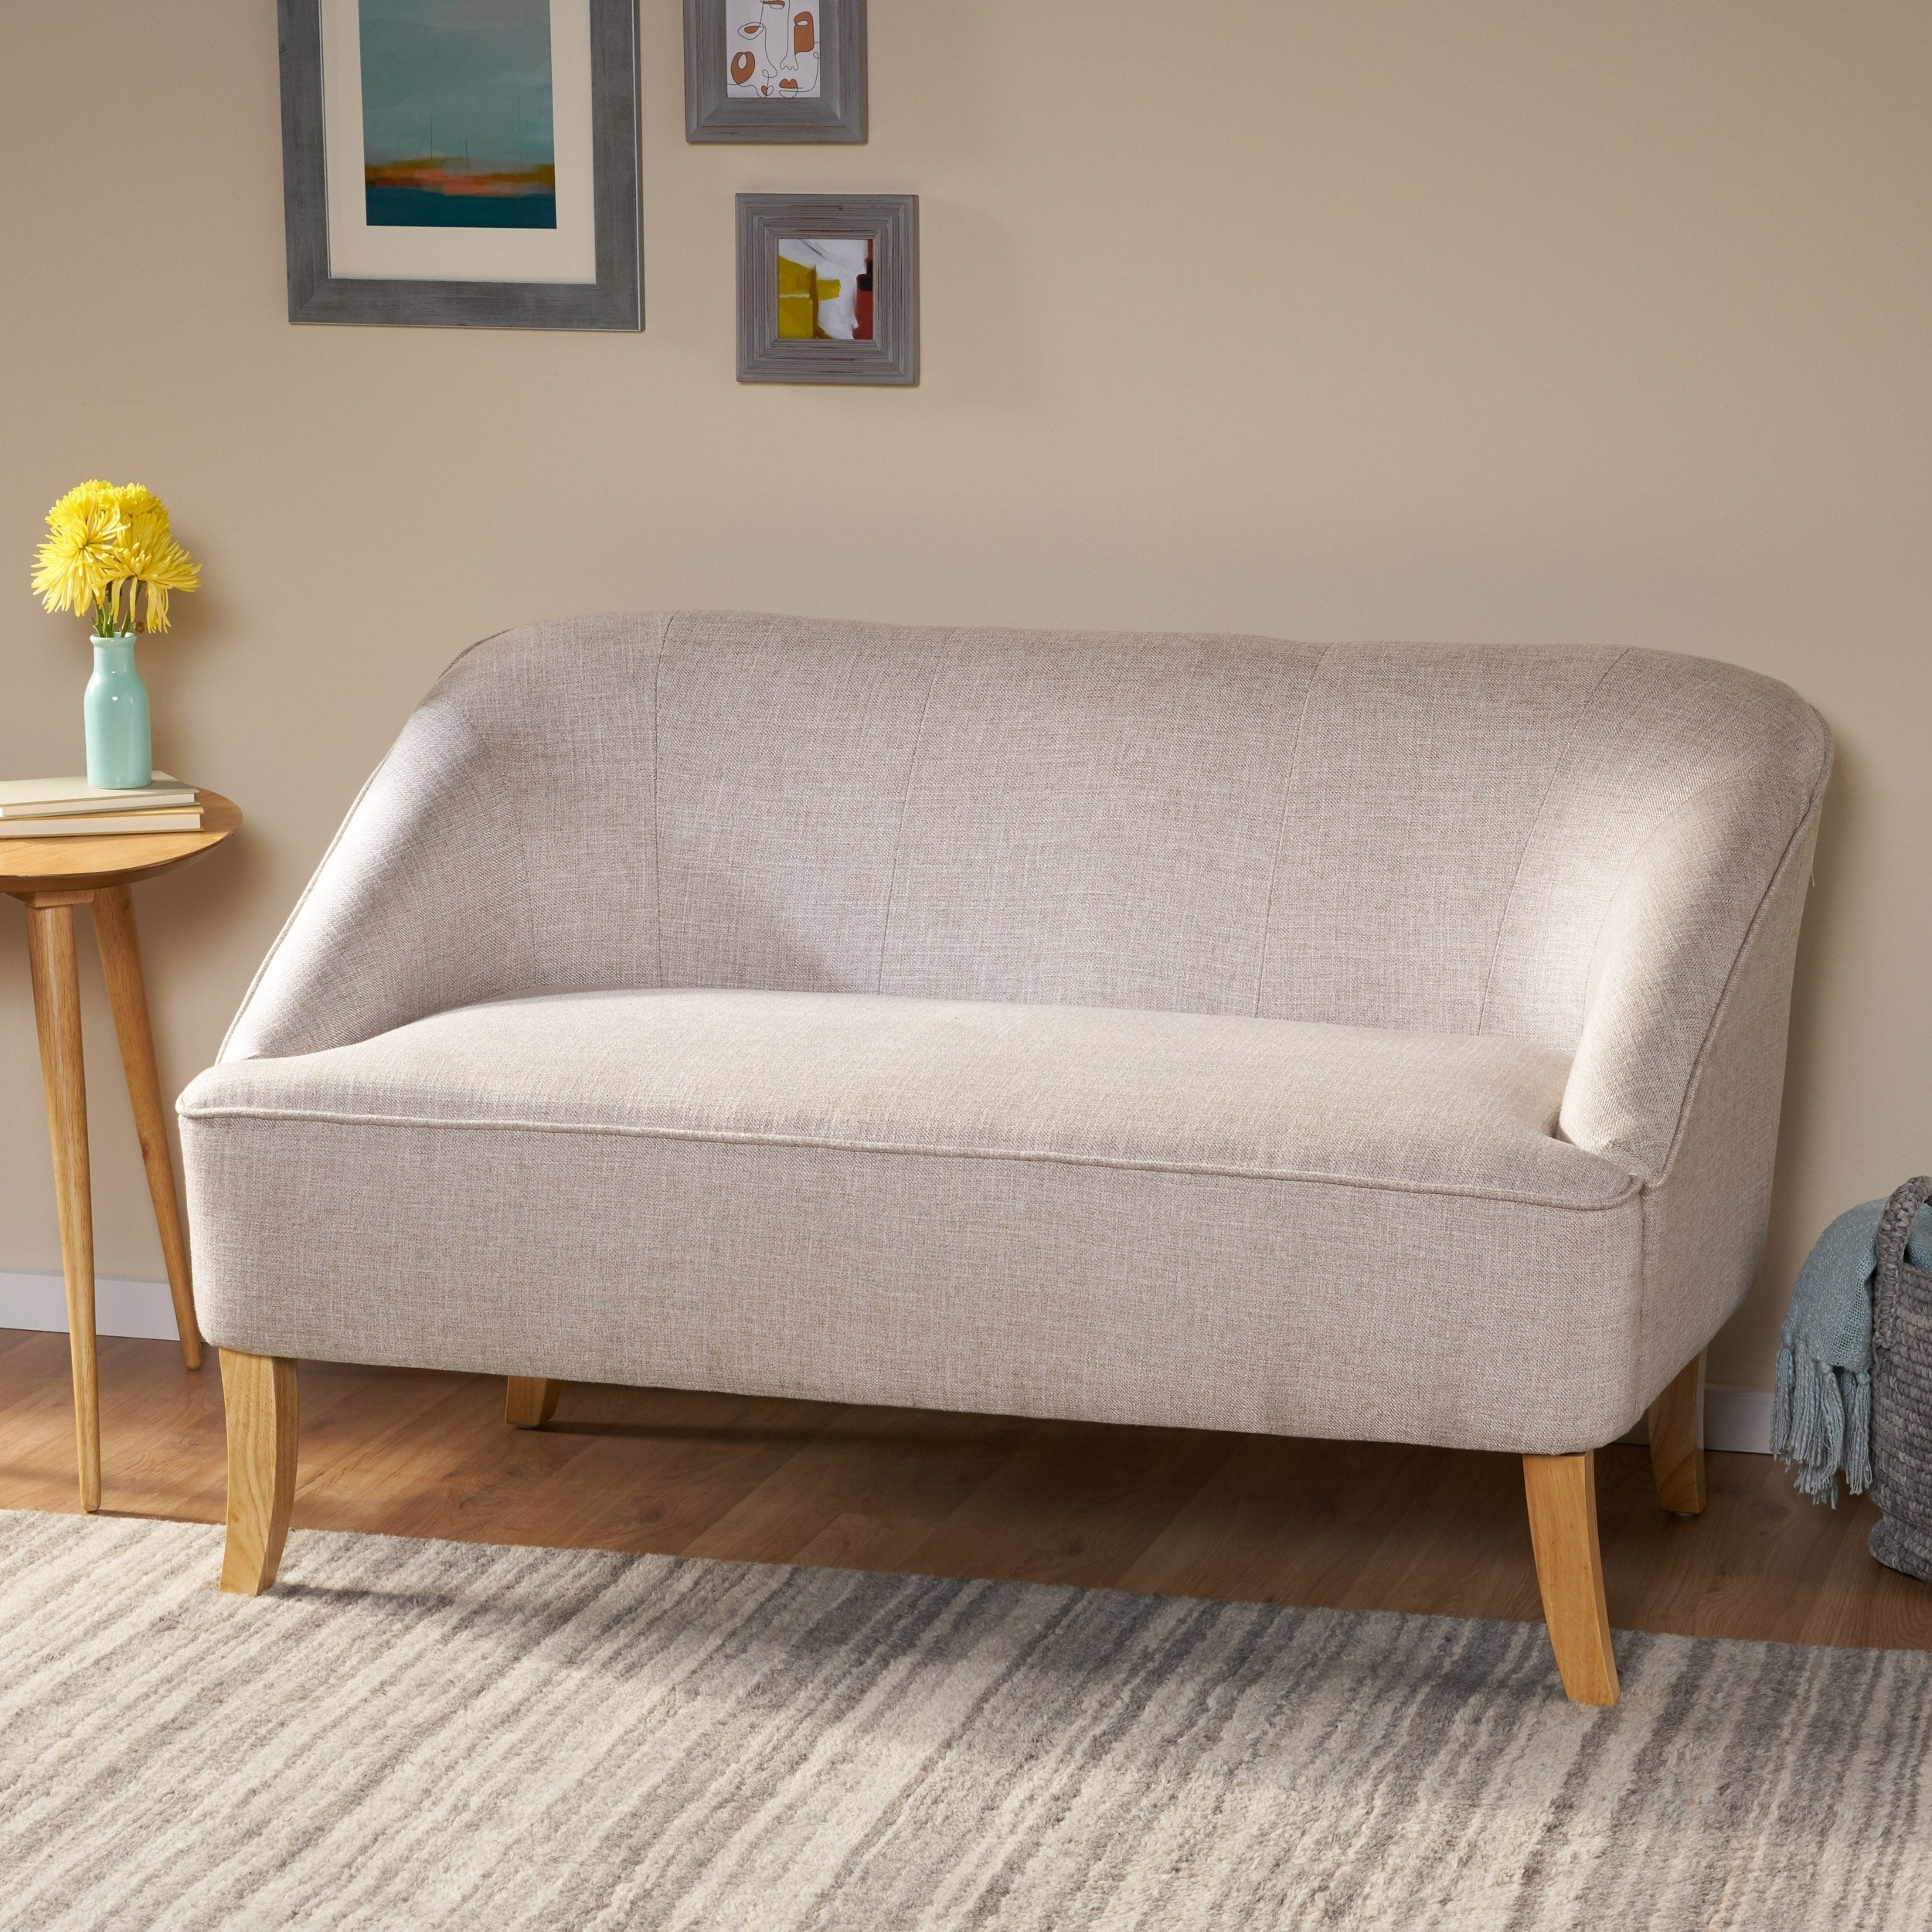 Shop Black Friday Deals On Justus Mid Century Modern Fabric Loveseat By Christopher Knight Home On Sale Overstock 17668855